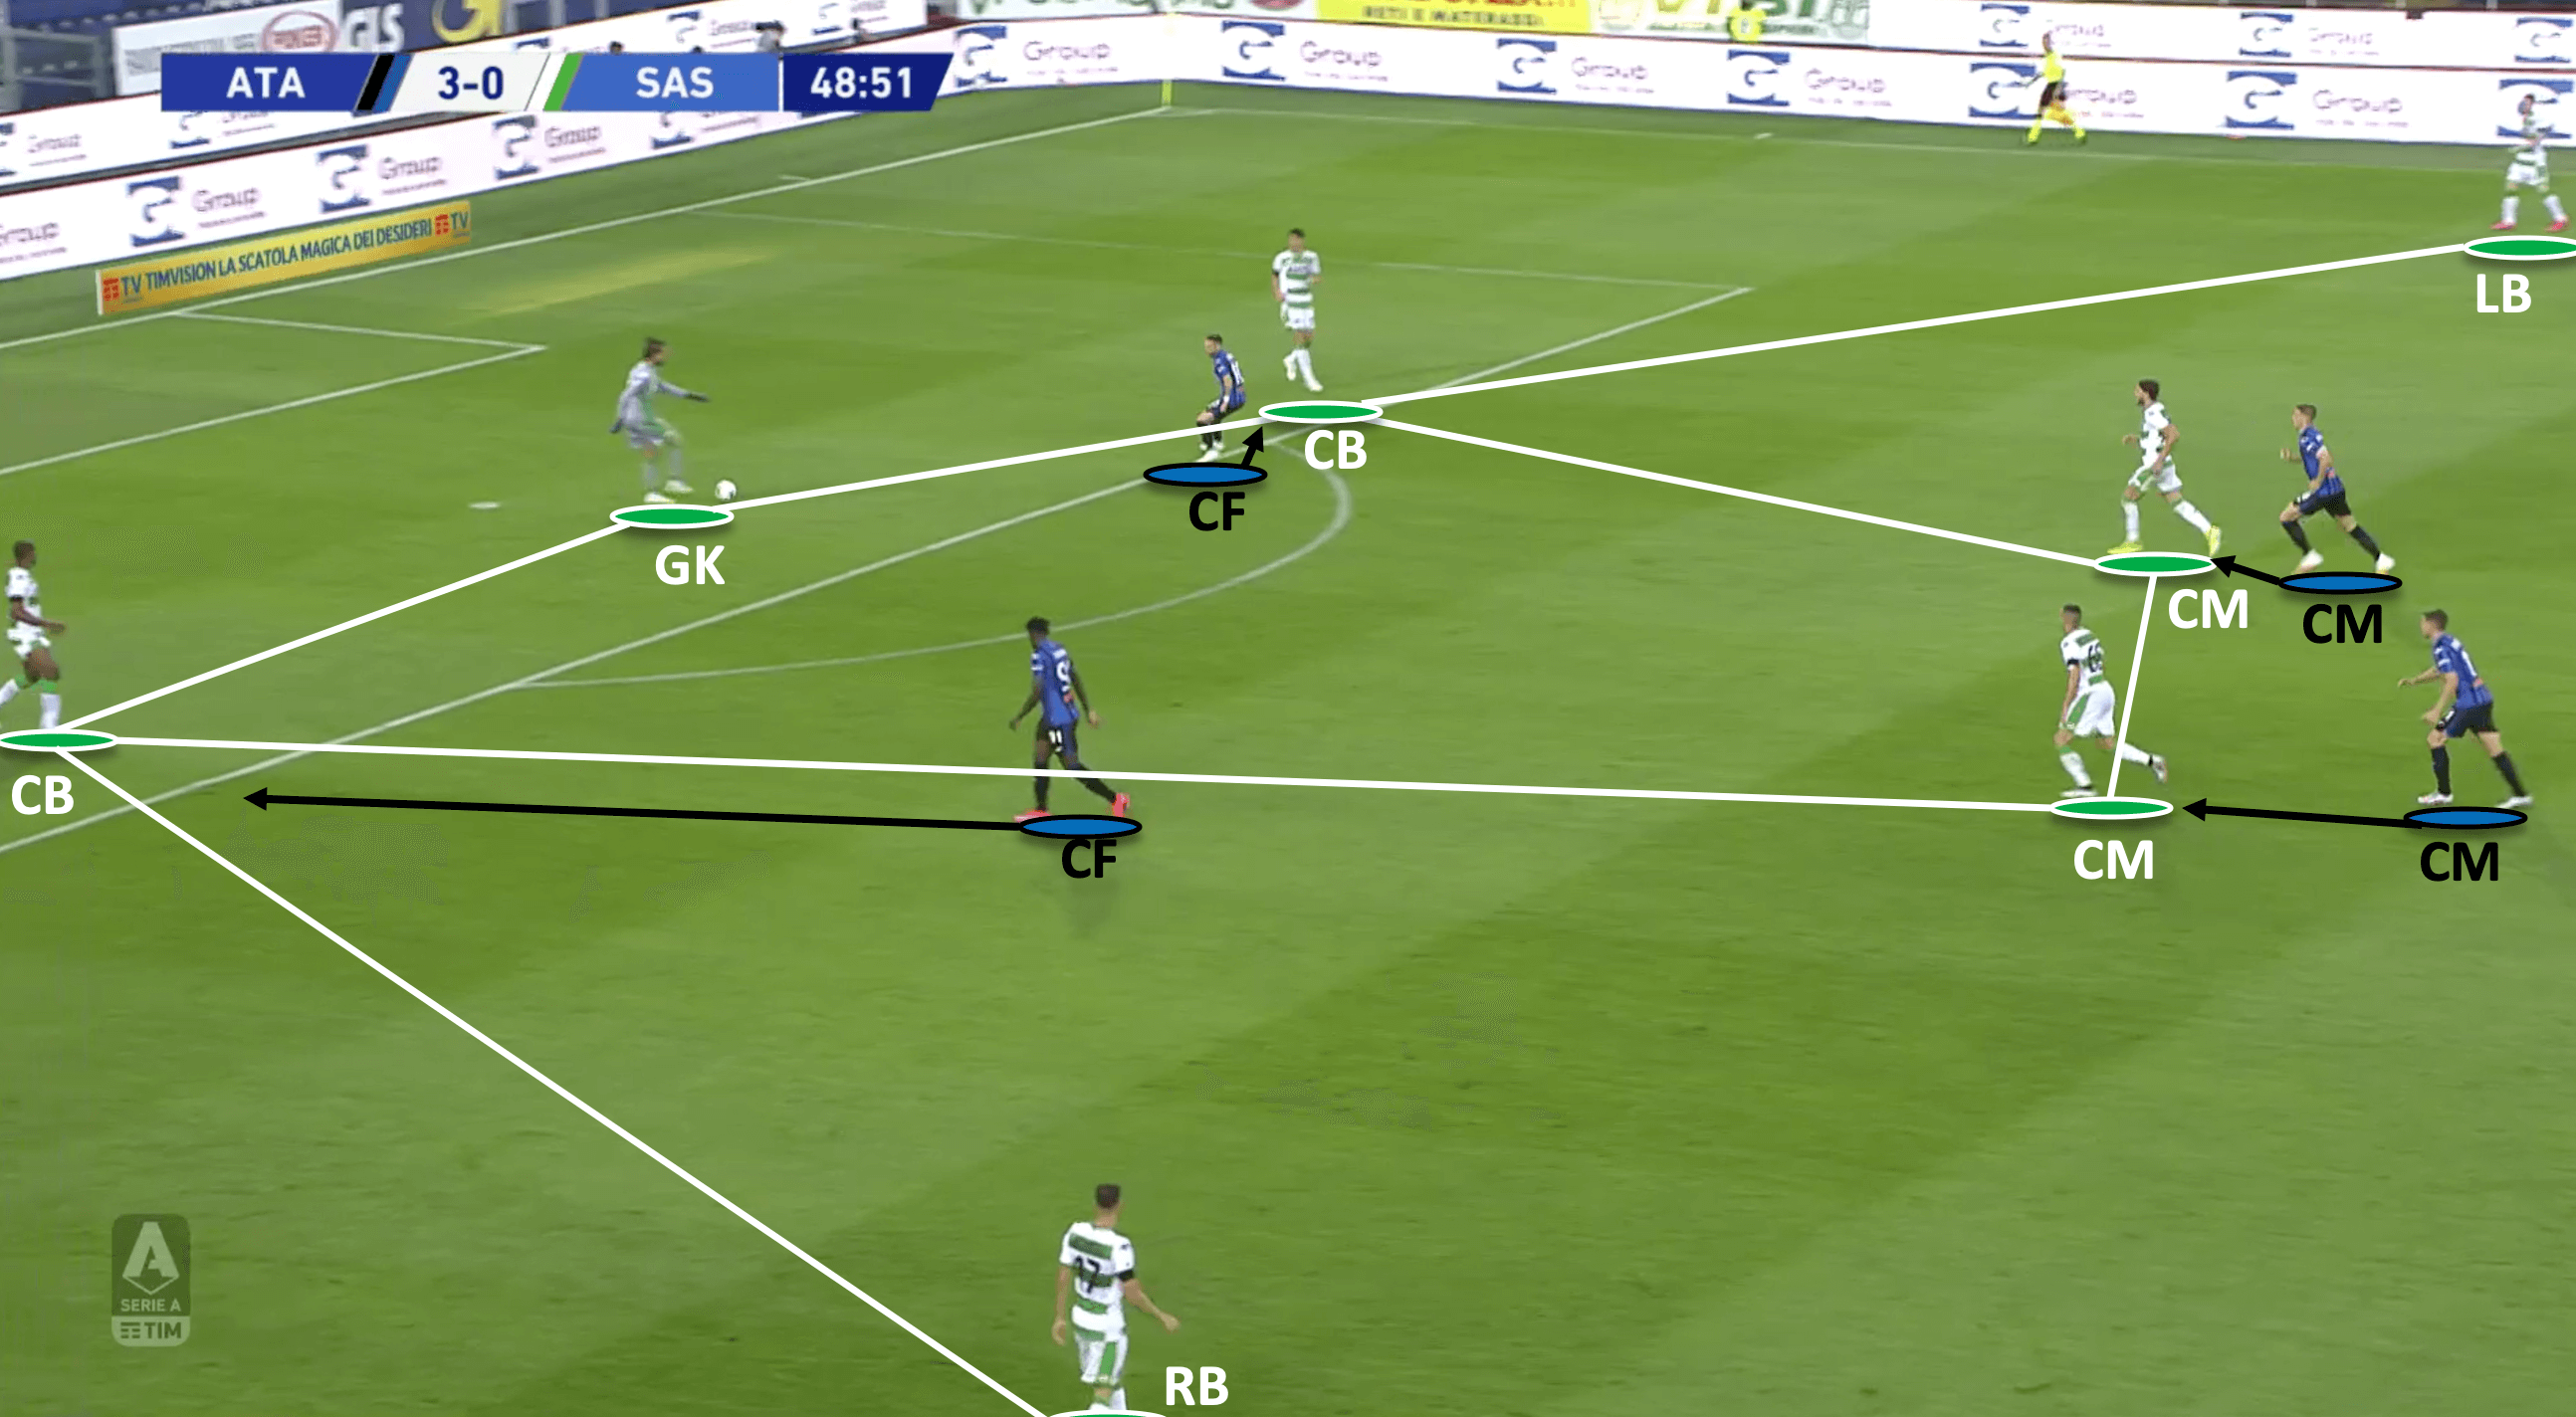 Serie A 2019/20: Atalanta vs Sassuolo - tactical analysis